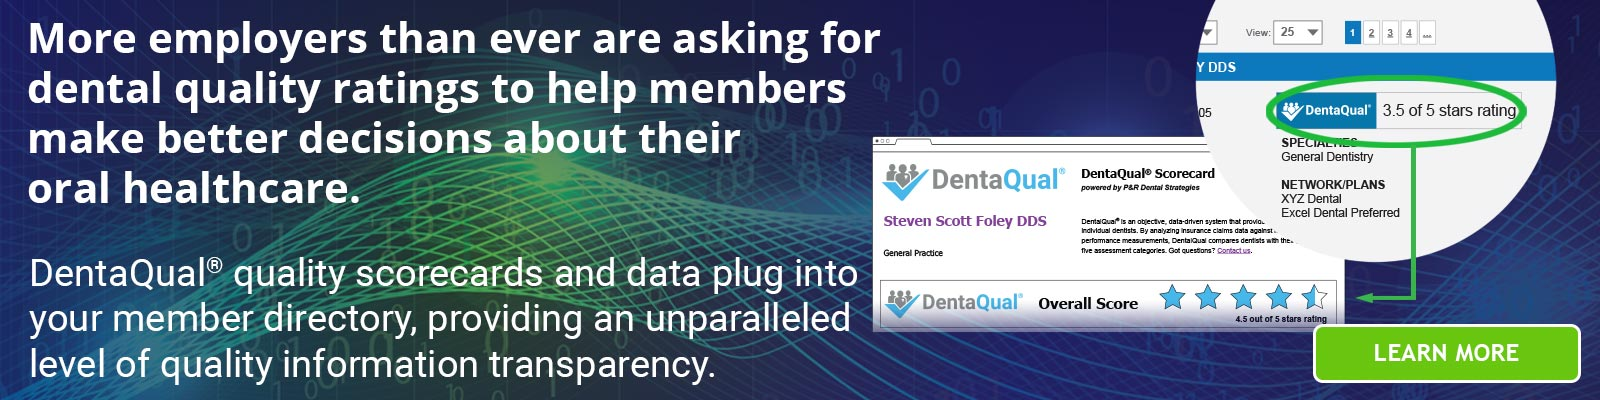 More employers than ever are asking for dental quality ratings. DentaQual delivers them.